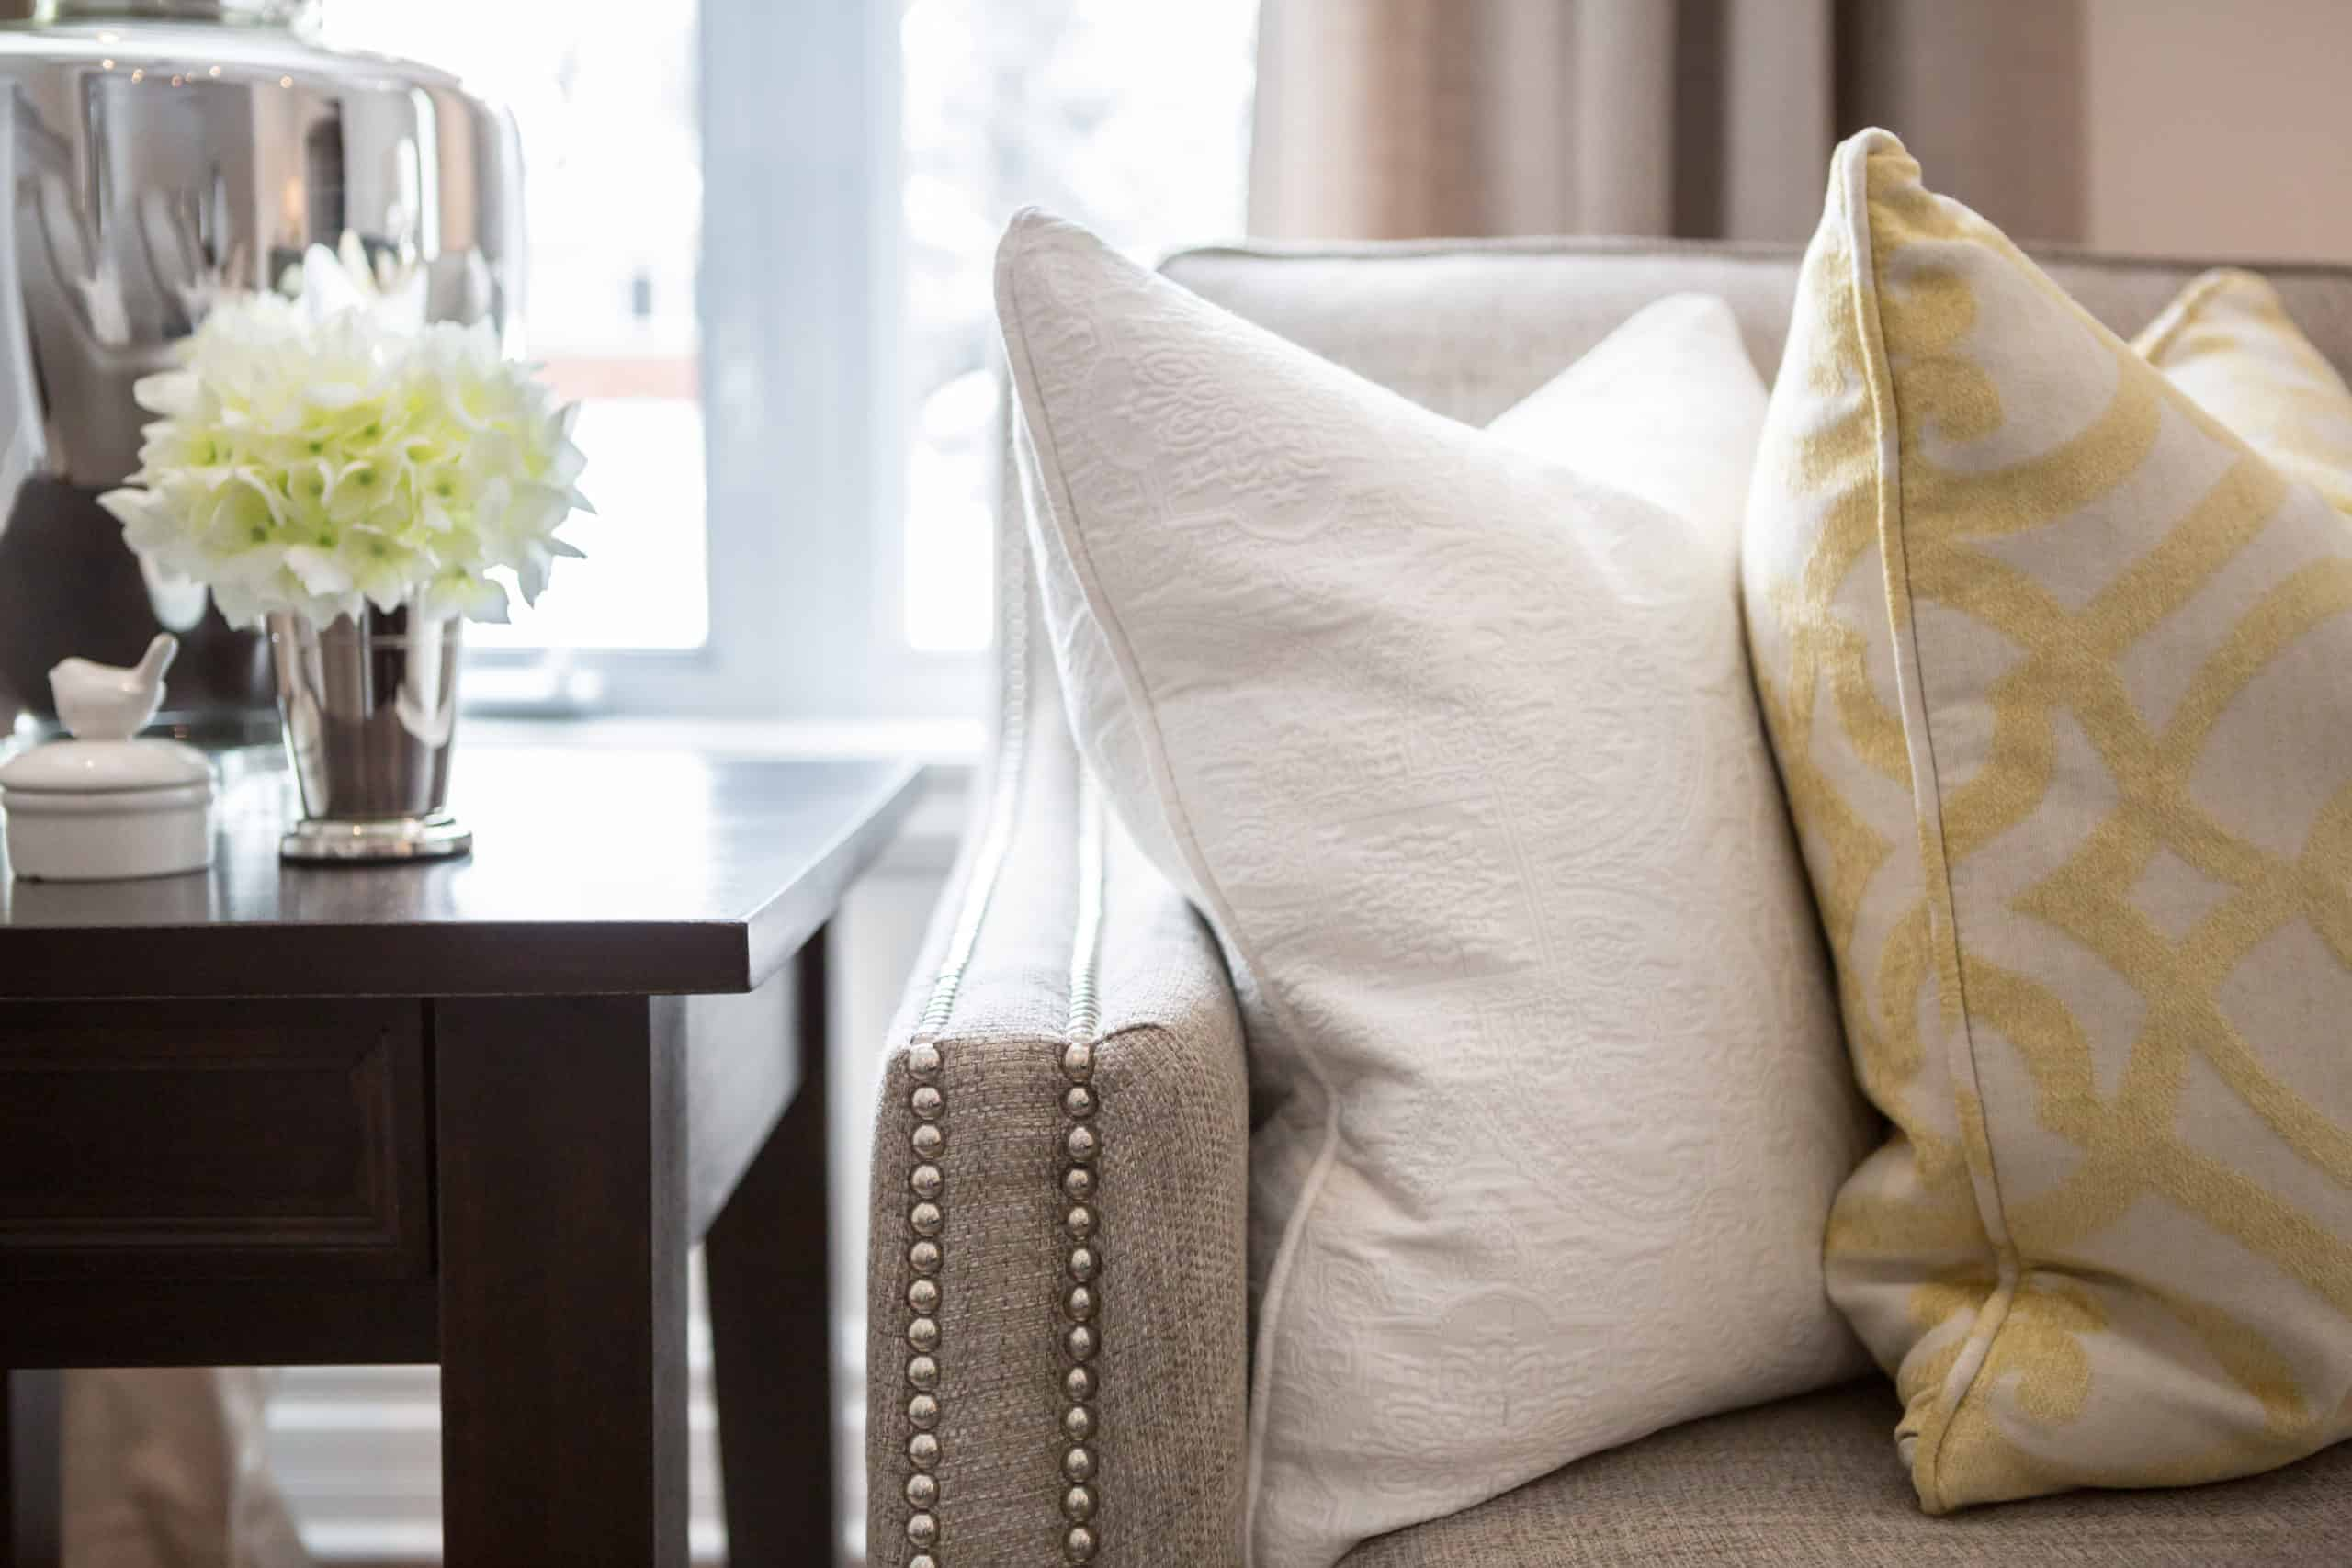 End of a couch with white and yellow pillows